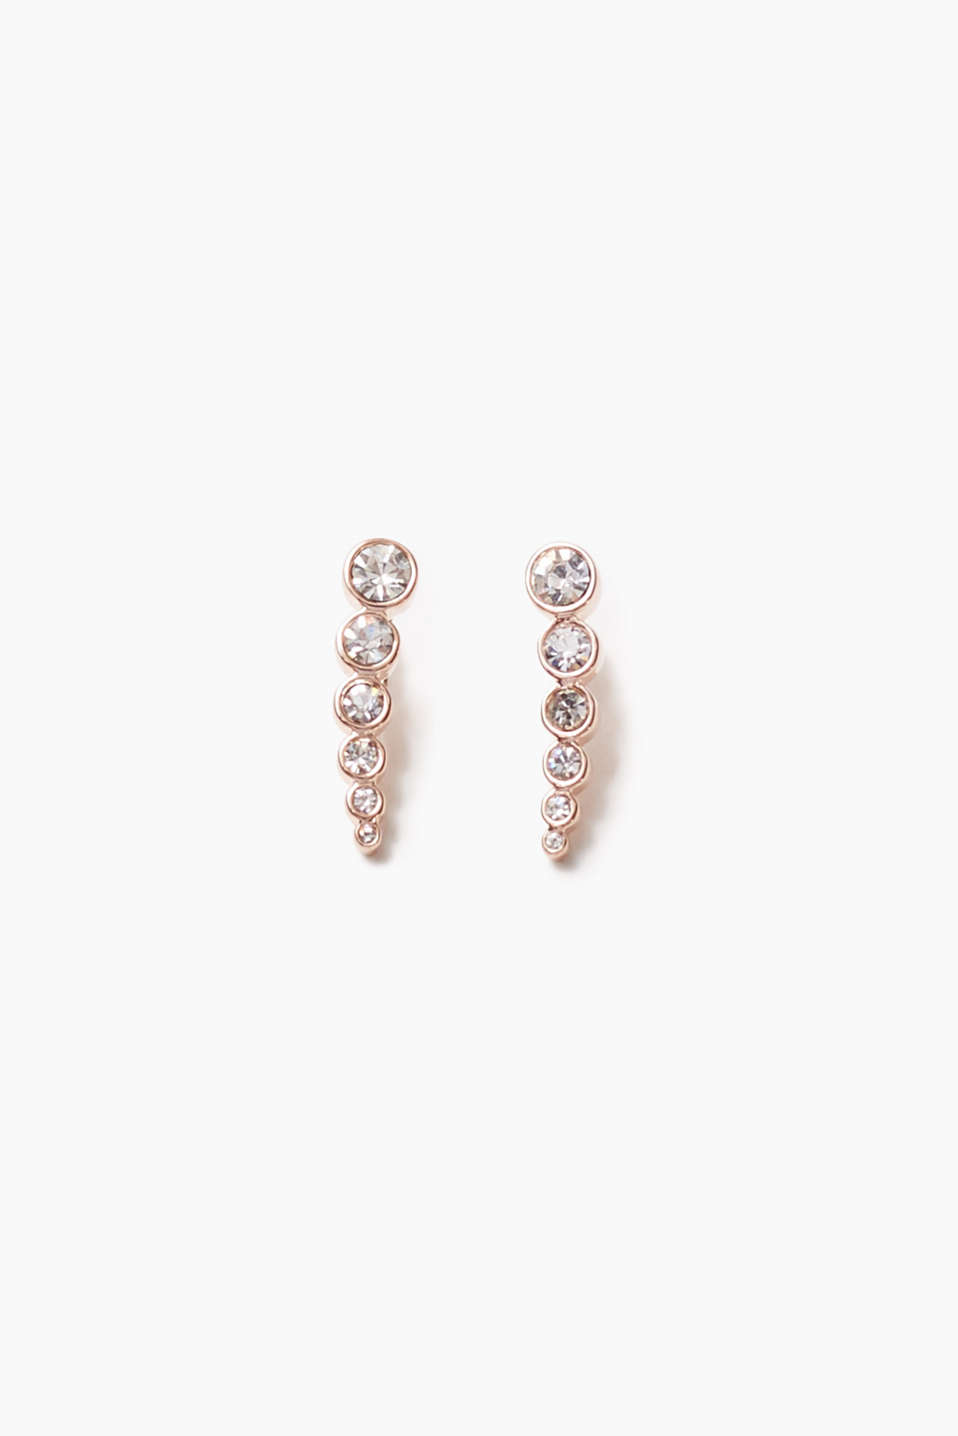 Esprit - Ear climbers, gold-plated metal, zirconia